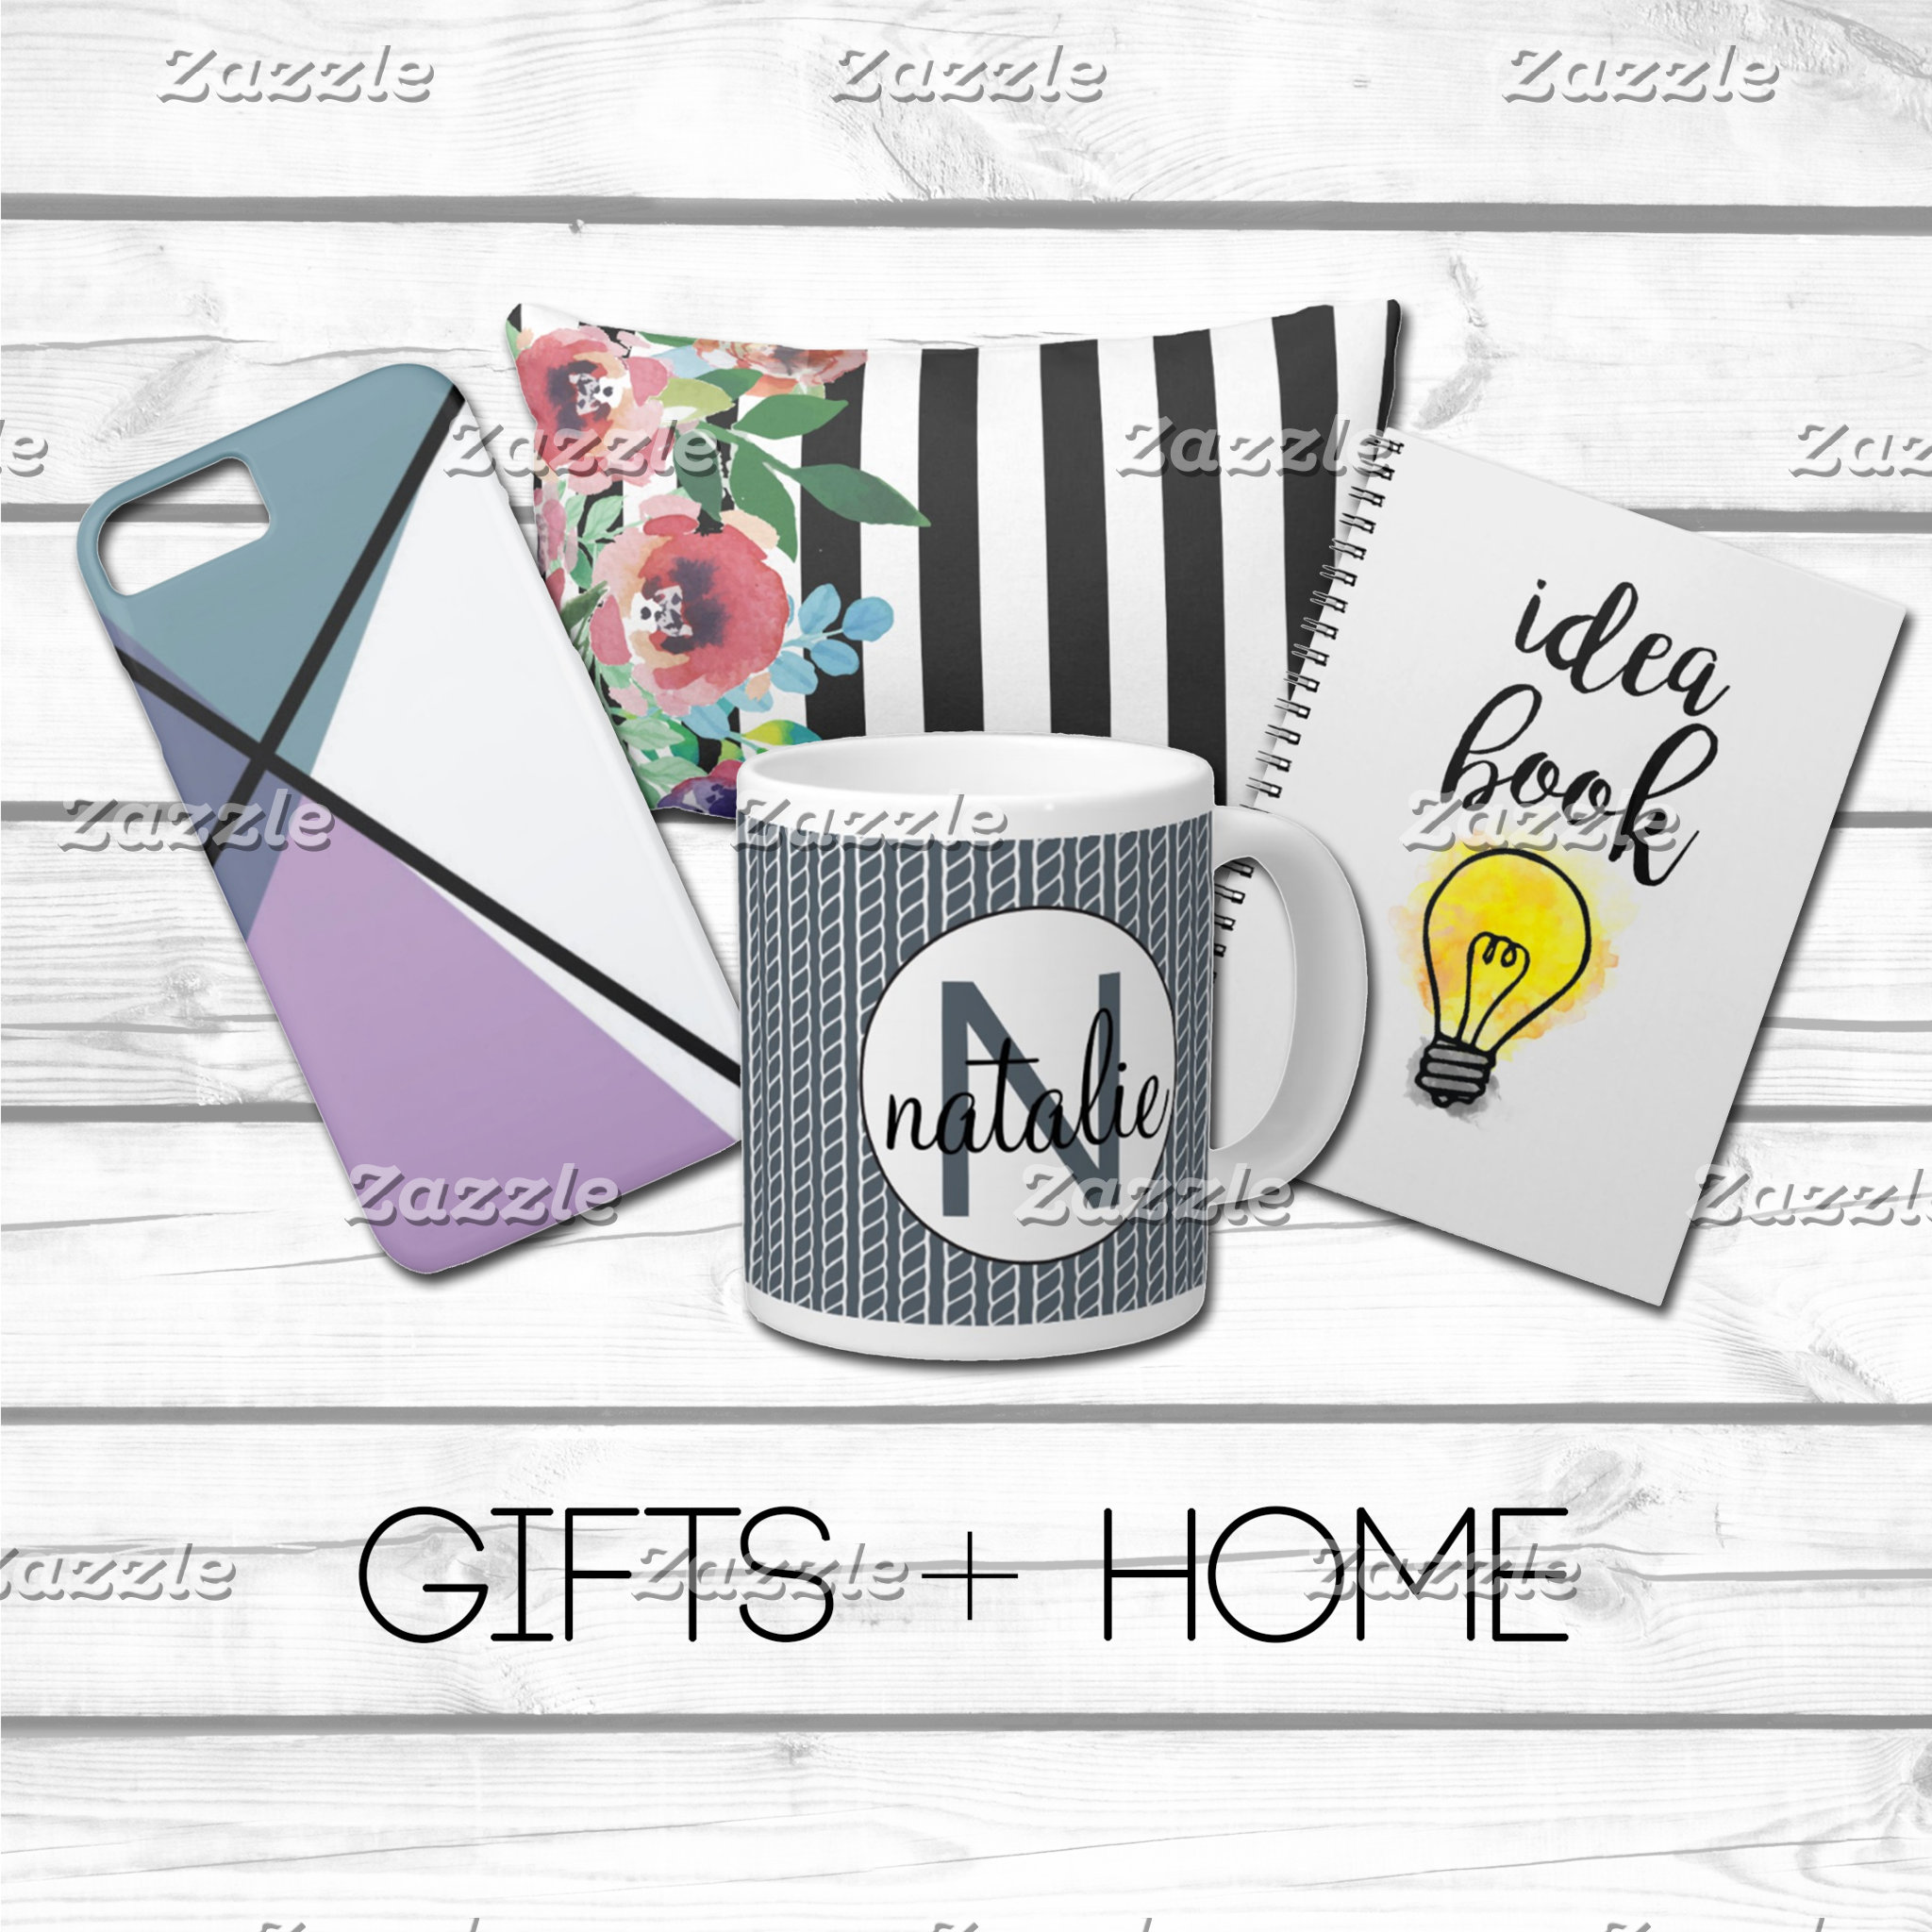 gifts + home